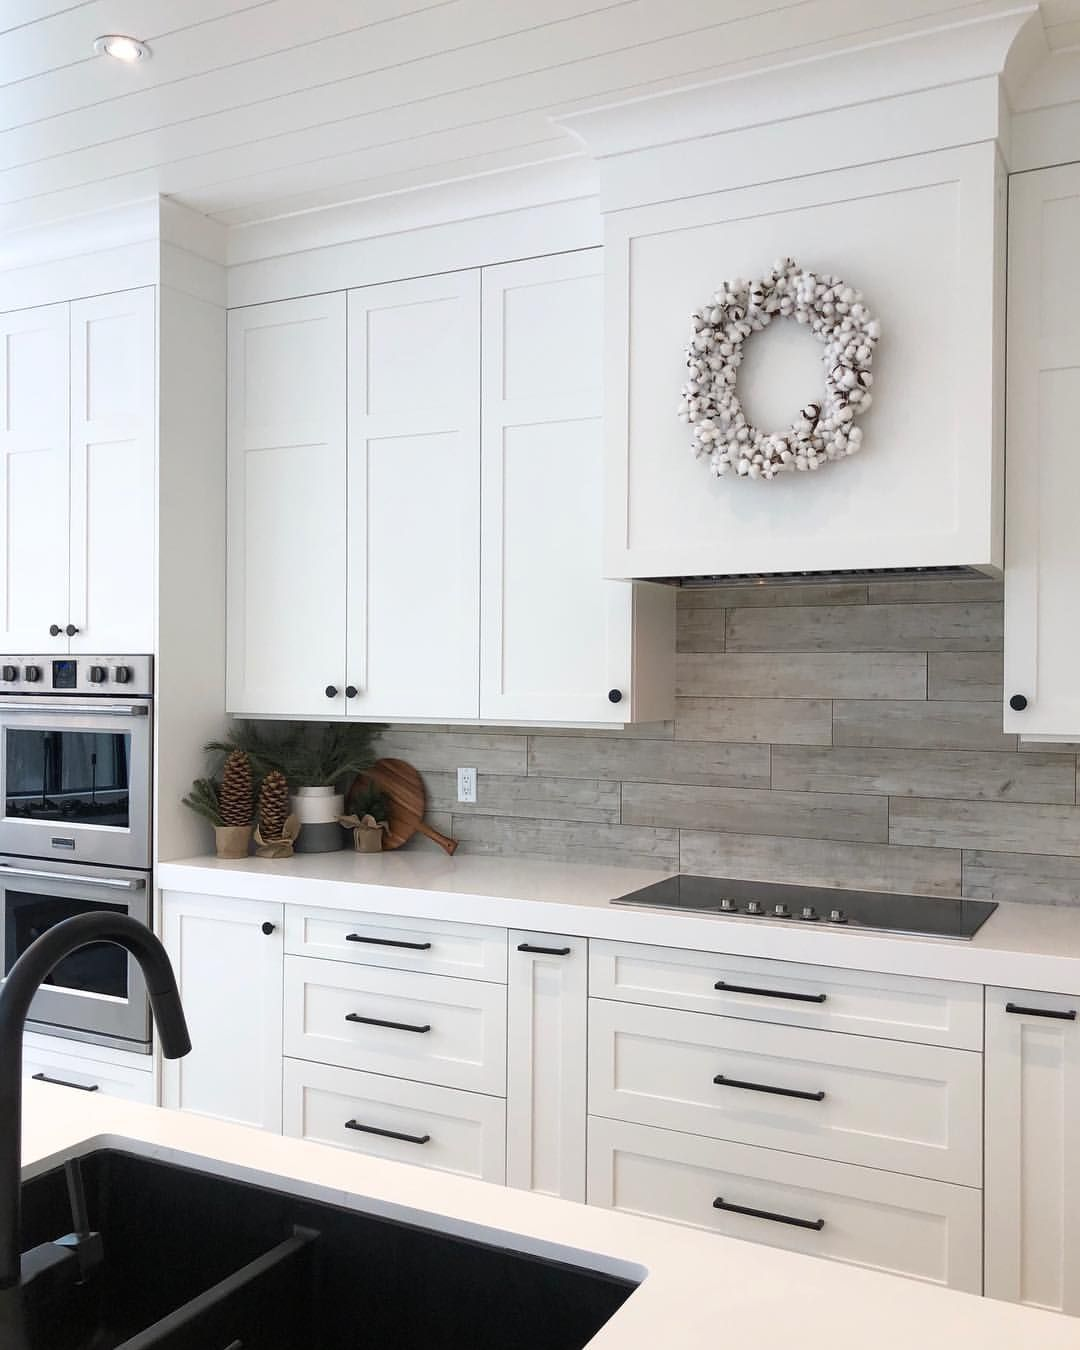 I Love Our Matte Black Sinks And Hardware And The Most Common Questions I Get Asked About All Our Mat Black Farmhouse Sink Black Kitchen Handles Black Kitchens